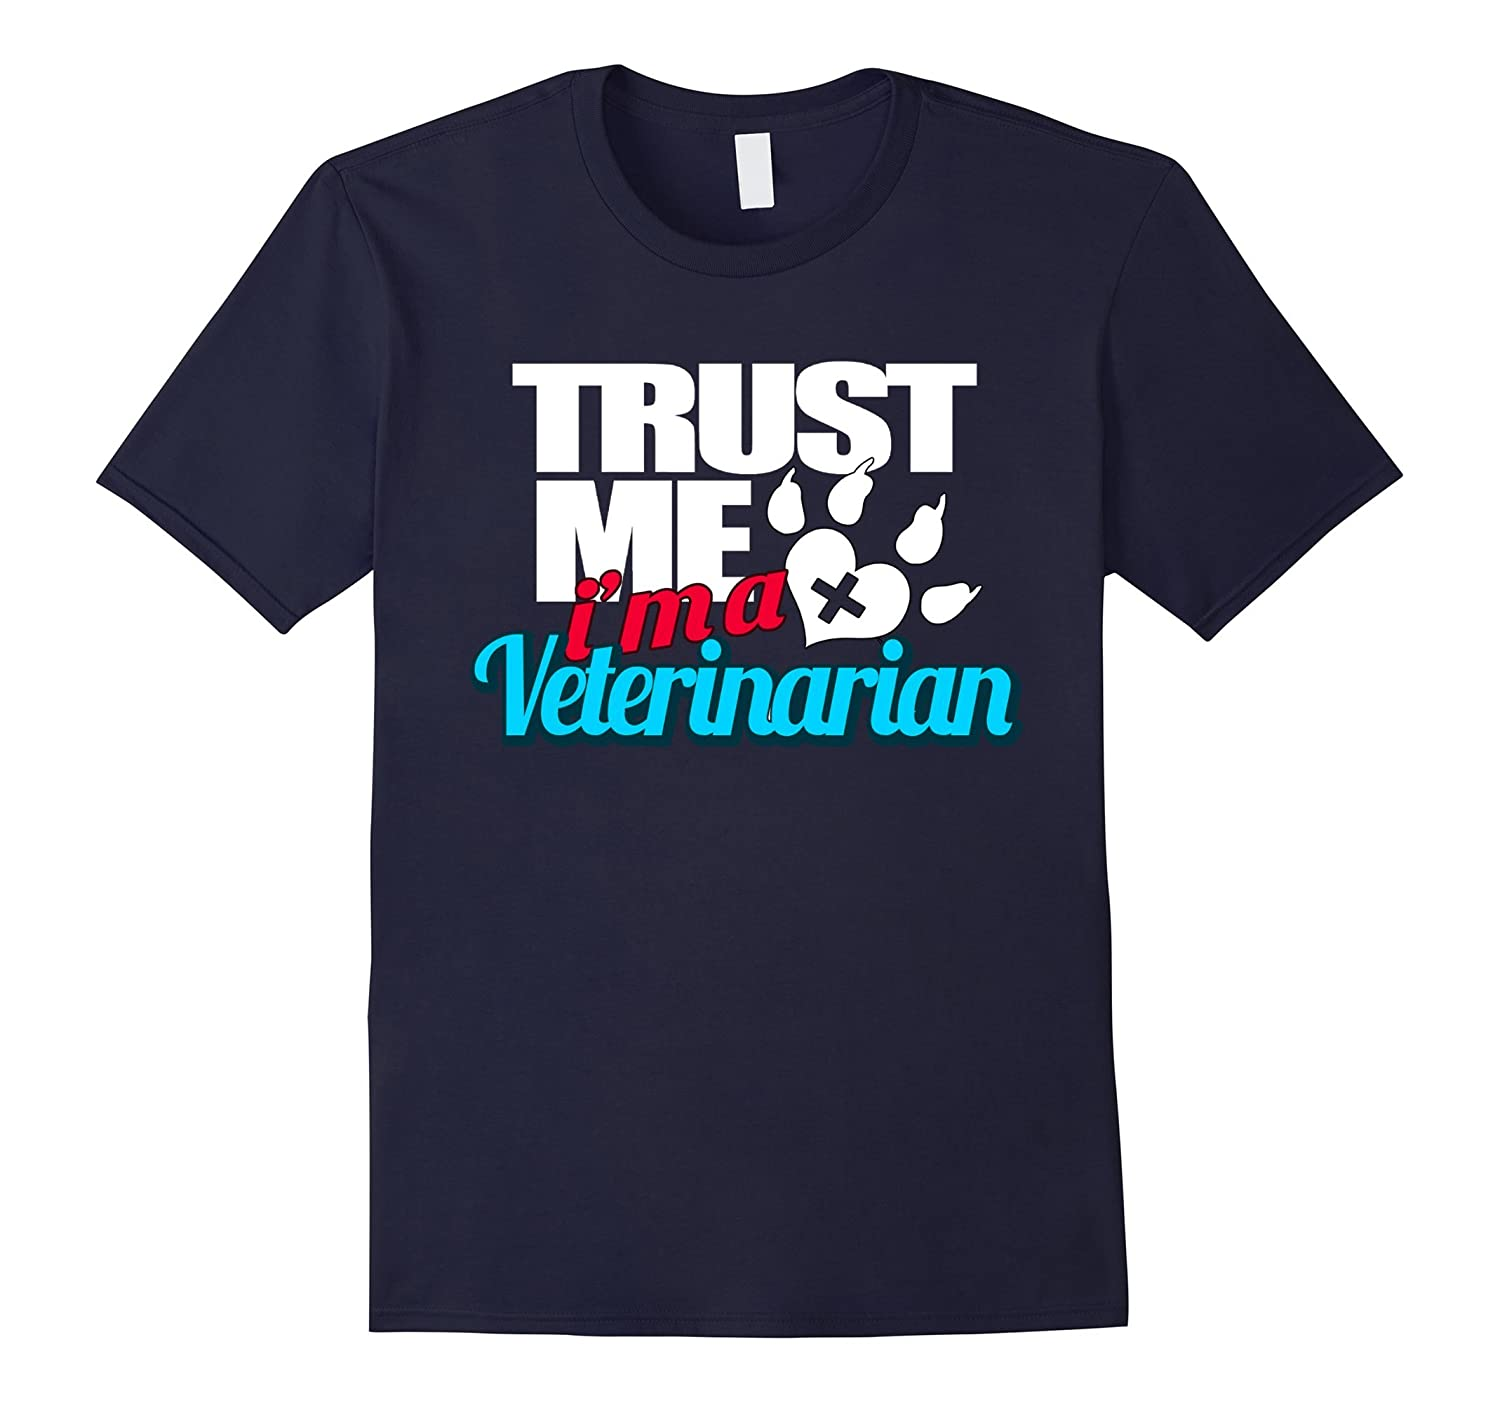 Trust Me Im a Veterinarian Shirts For Women - Vet Shirts-TD